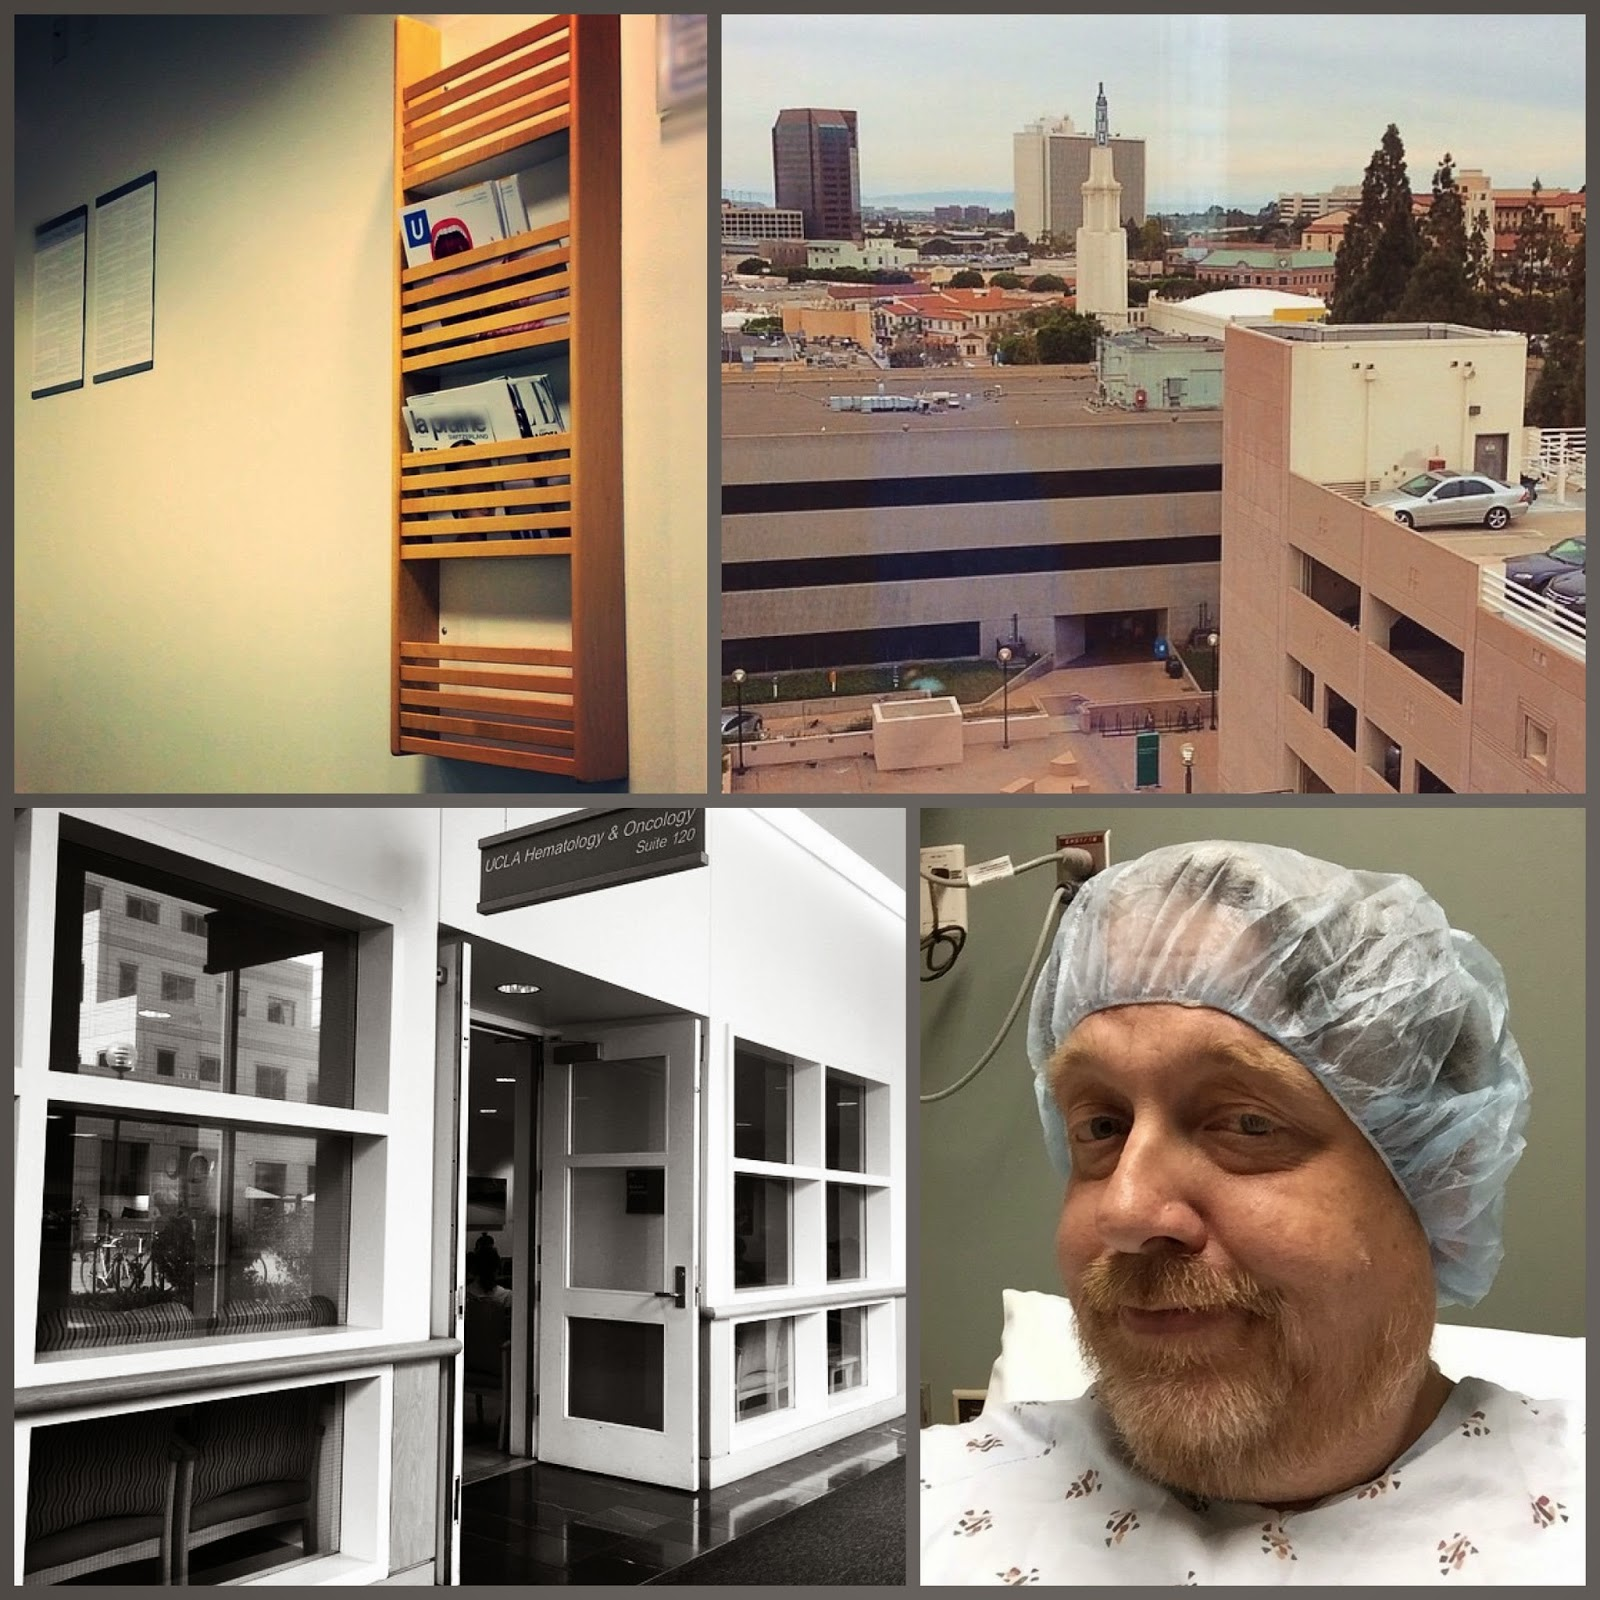 Scenes from UCLA Medical Center, January 28-30